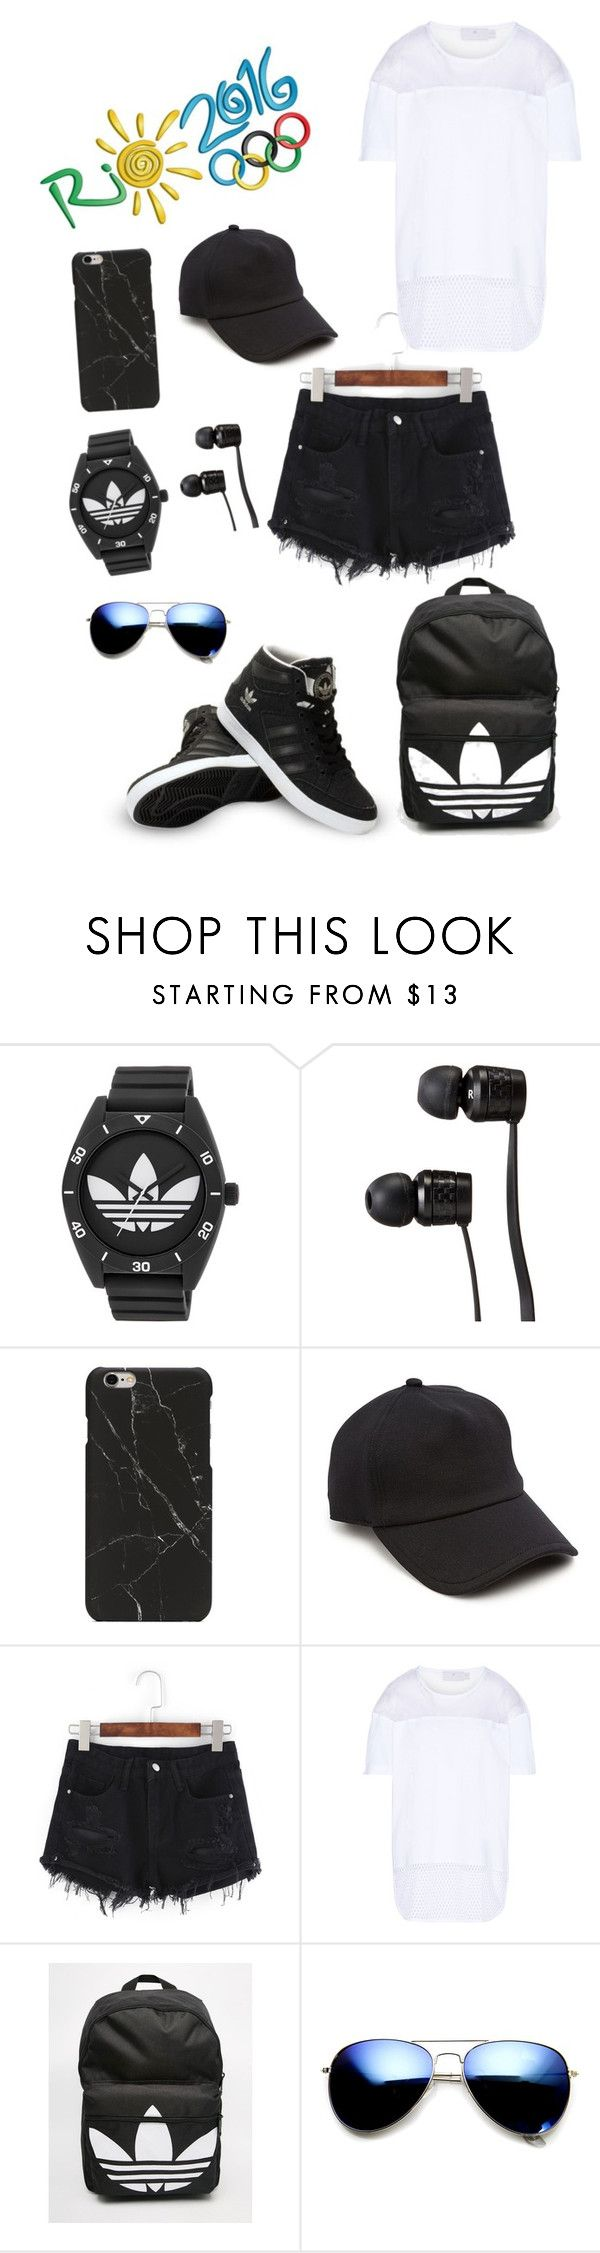 """Ready to go!"" by kathers101 ❤ liked on Polyvore featuring adidas, Vans, rag & bone and ZeroUV"